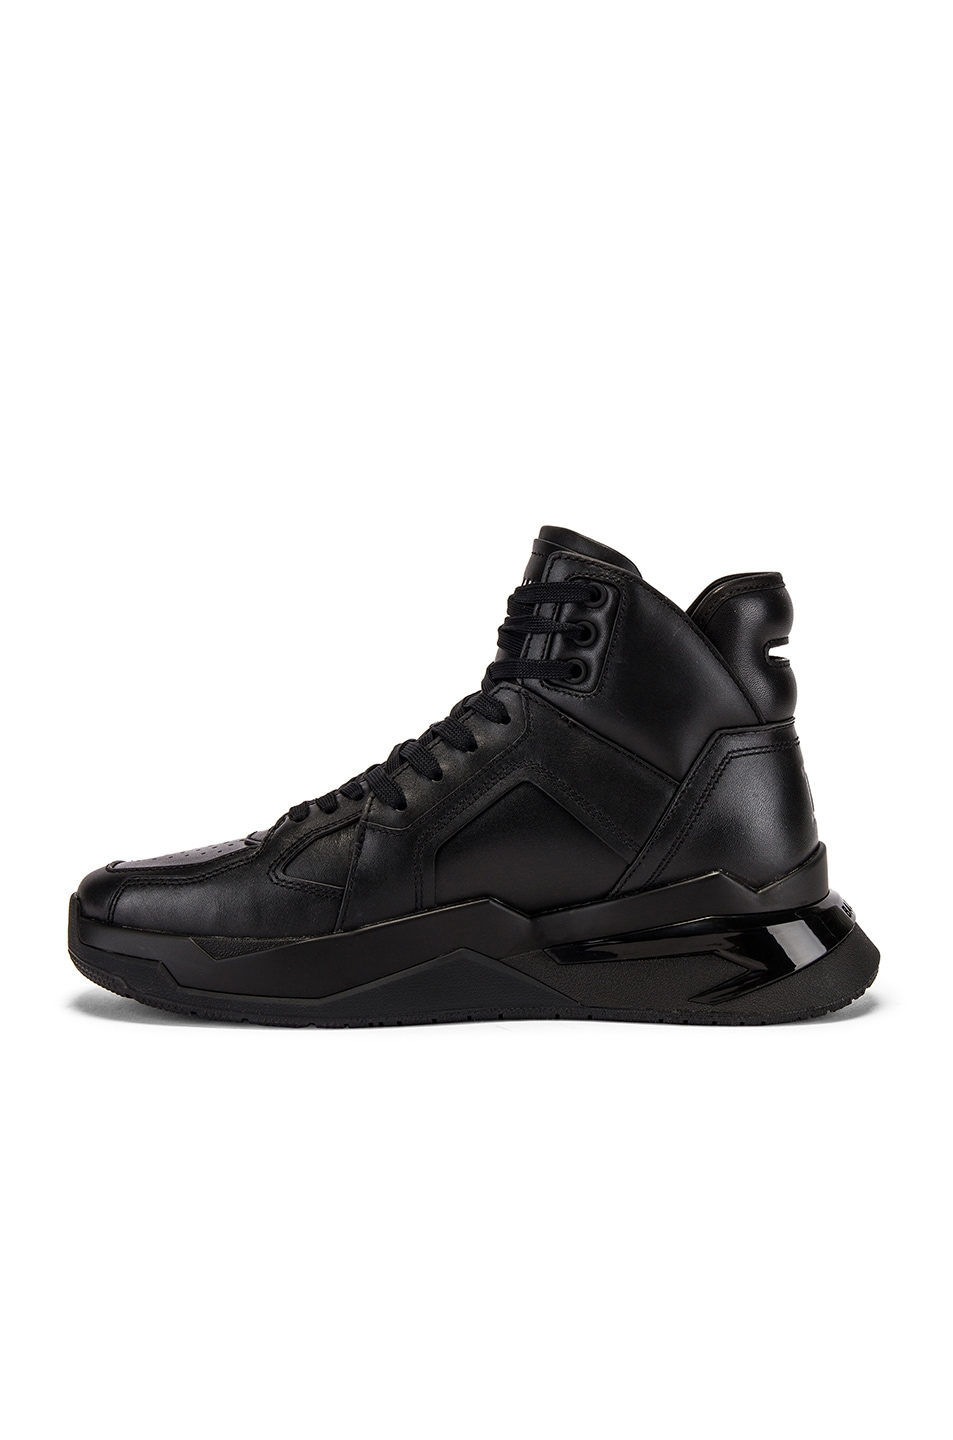 Image 5 of BALMAIN B-Ball Leather Sneaker in Noir & Noir